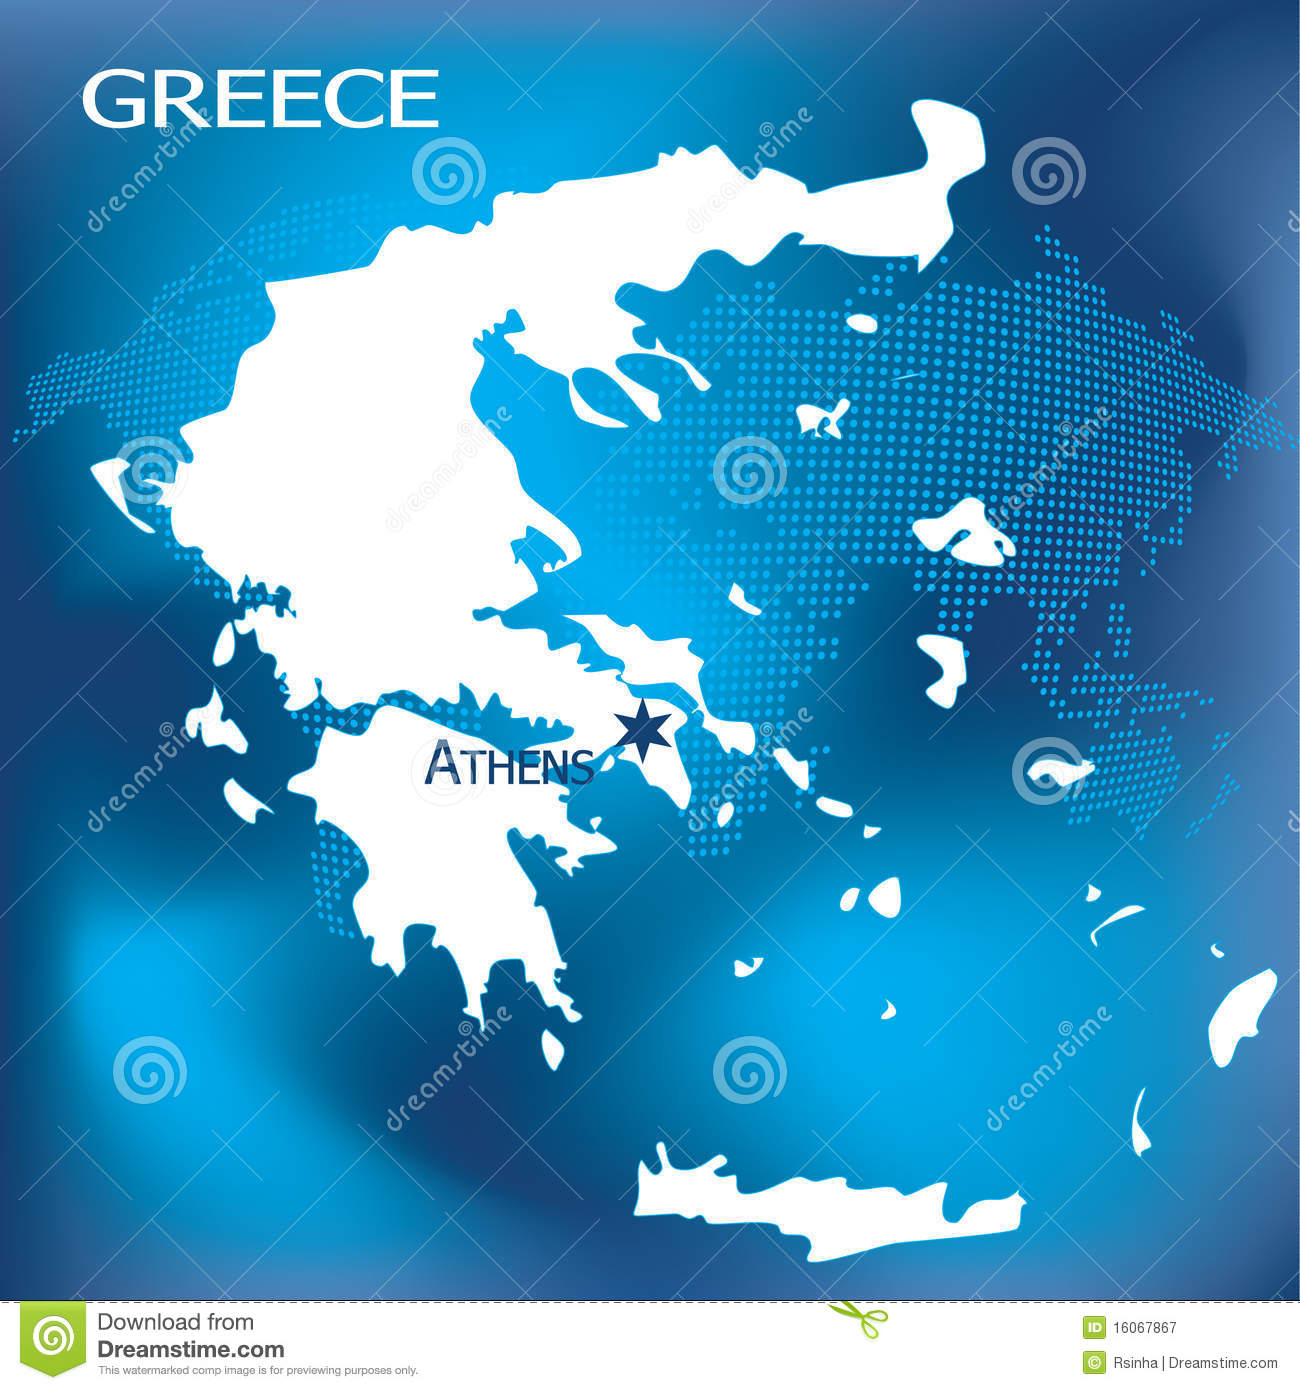 Greece map with athens stock vector illustration of network 16067867 greece map with athens with dotted world map in background gumiabroncs Image collections